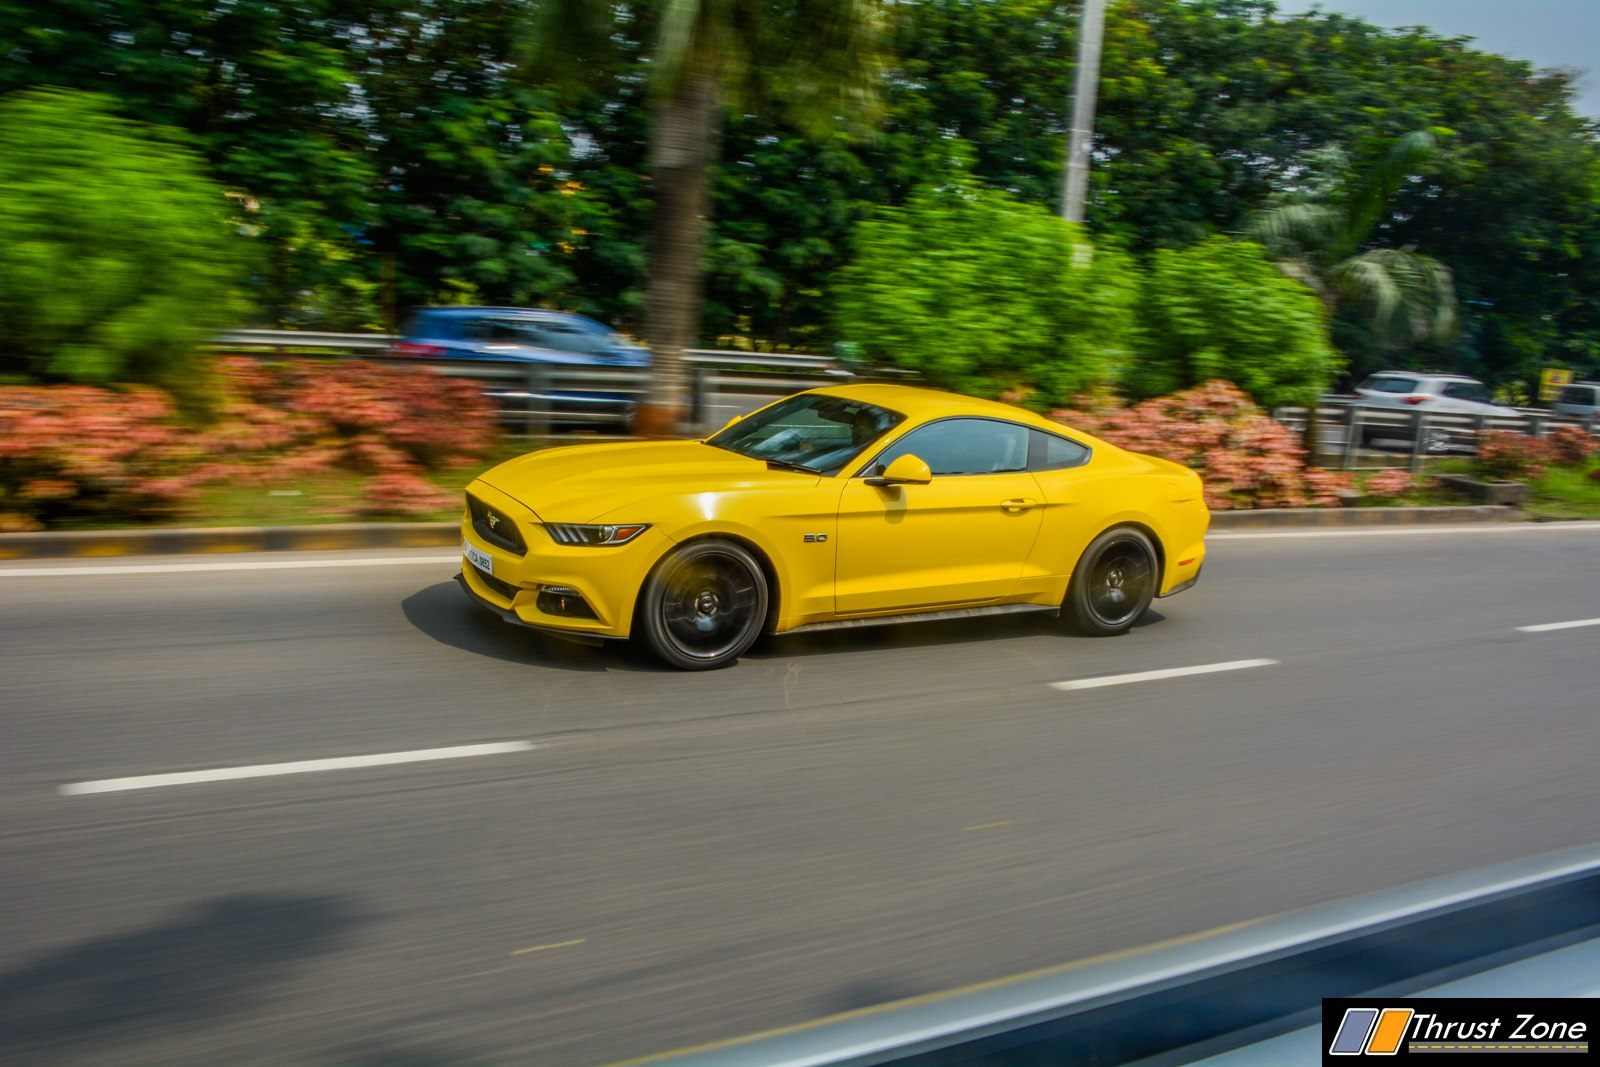 https://www.thrustzone.com/wp-content/uploads/2018/09/Ford-Mustang-India-V8-Review-8.jpg